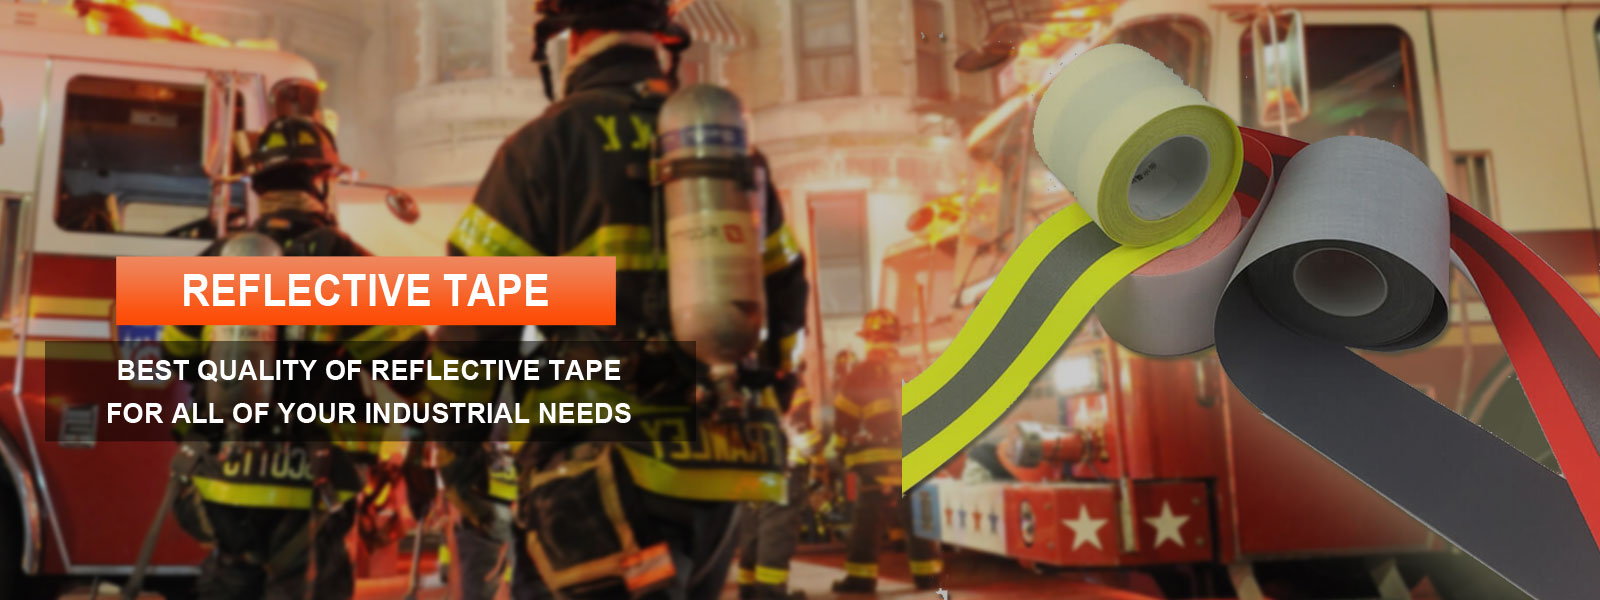 Reflective Tape Manufacturers in Sweden